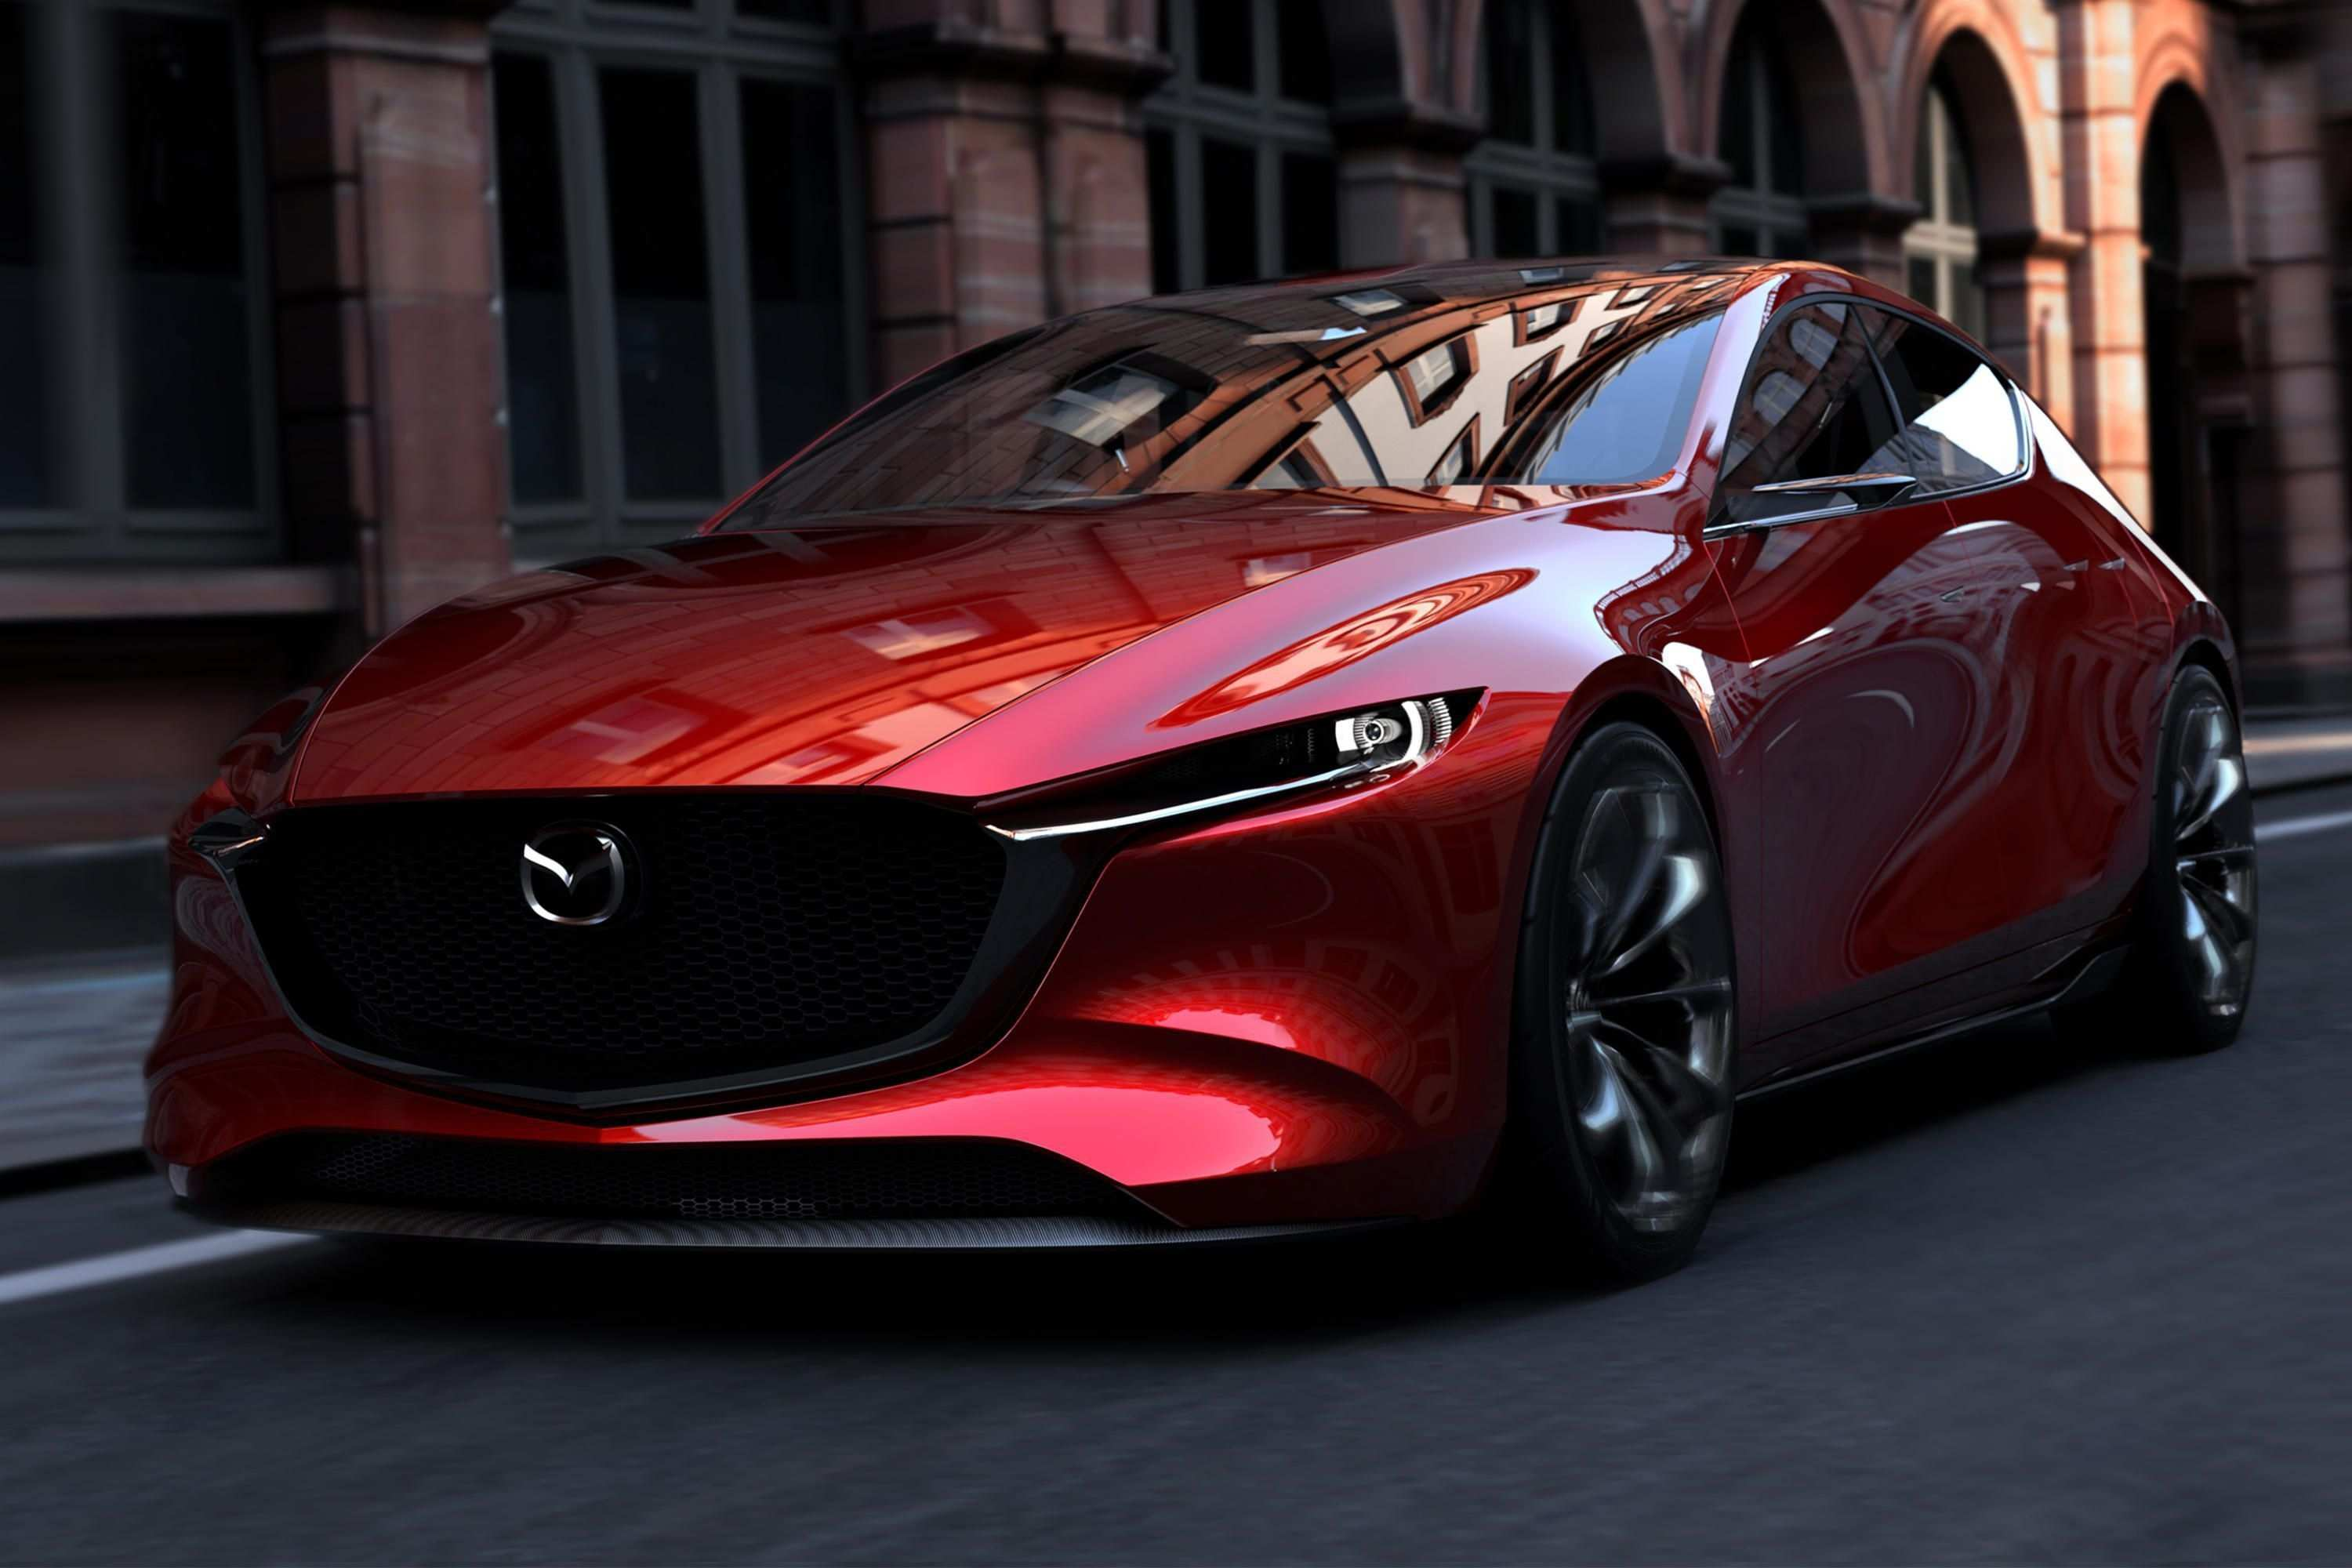 44 Great Mazda 3 2019 Forum Price with Mazda 3 2019 Forum